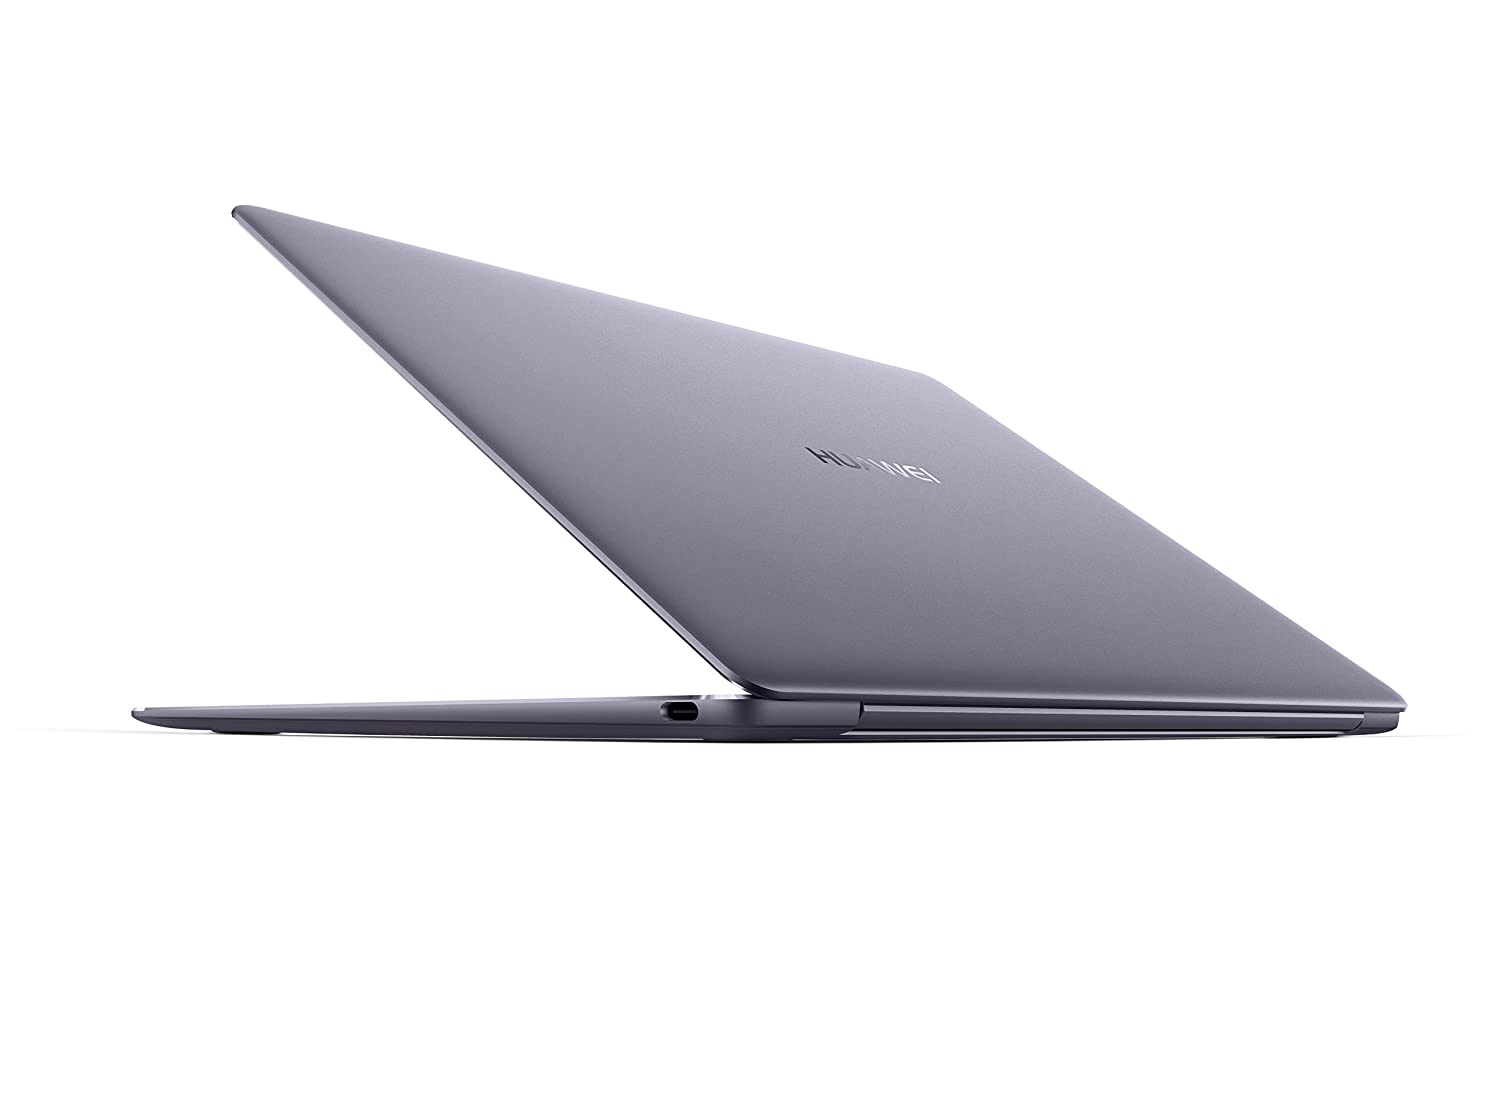 "Amazon.com: Huawei MateBook X Signature Edition 13"" Laptop, Office 365  Personal Included, 8+256GB / Intel Core i5 / 2K Display, MateDock v2.0  included ..."